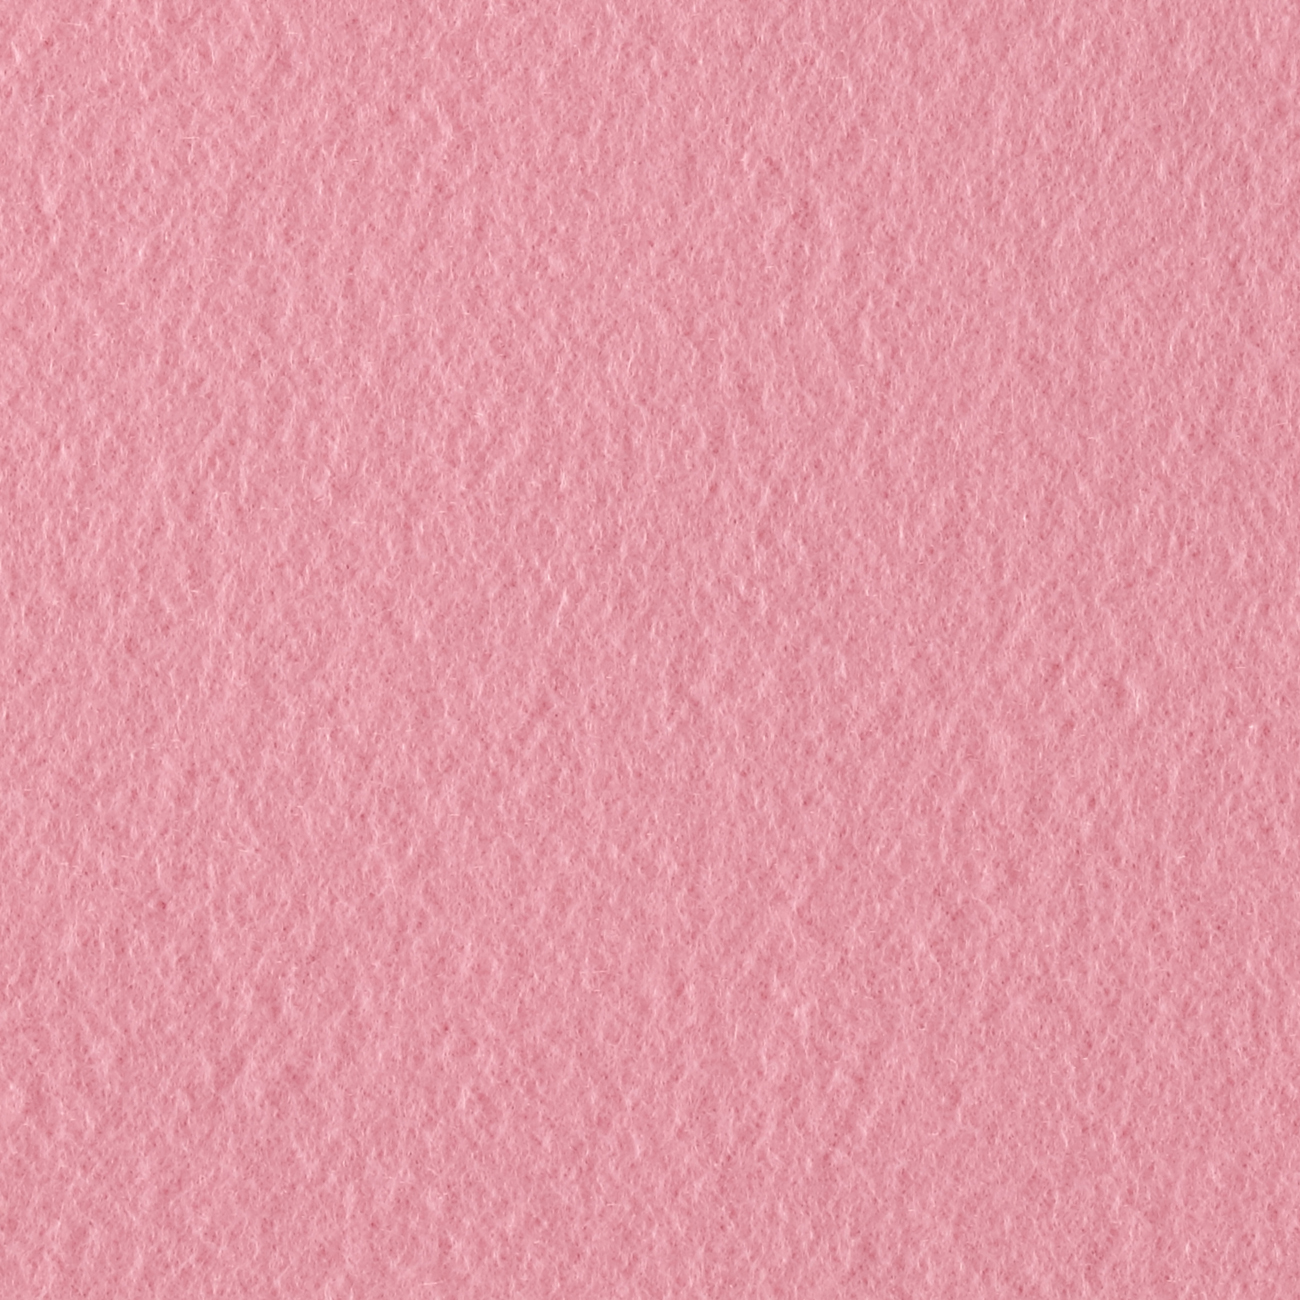 Polar Fleece Solid Candy Pink Fabric by Newcastle in USA